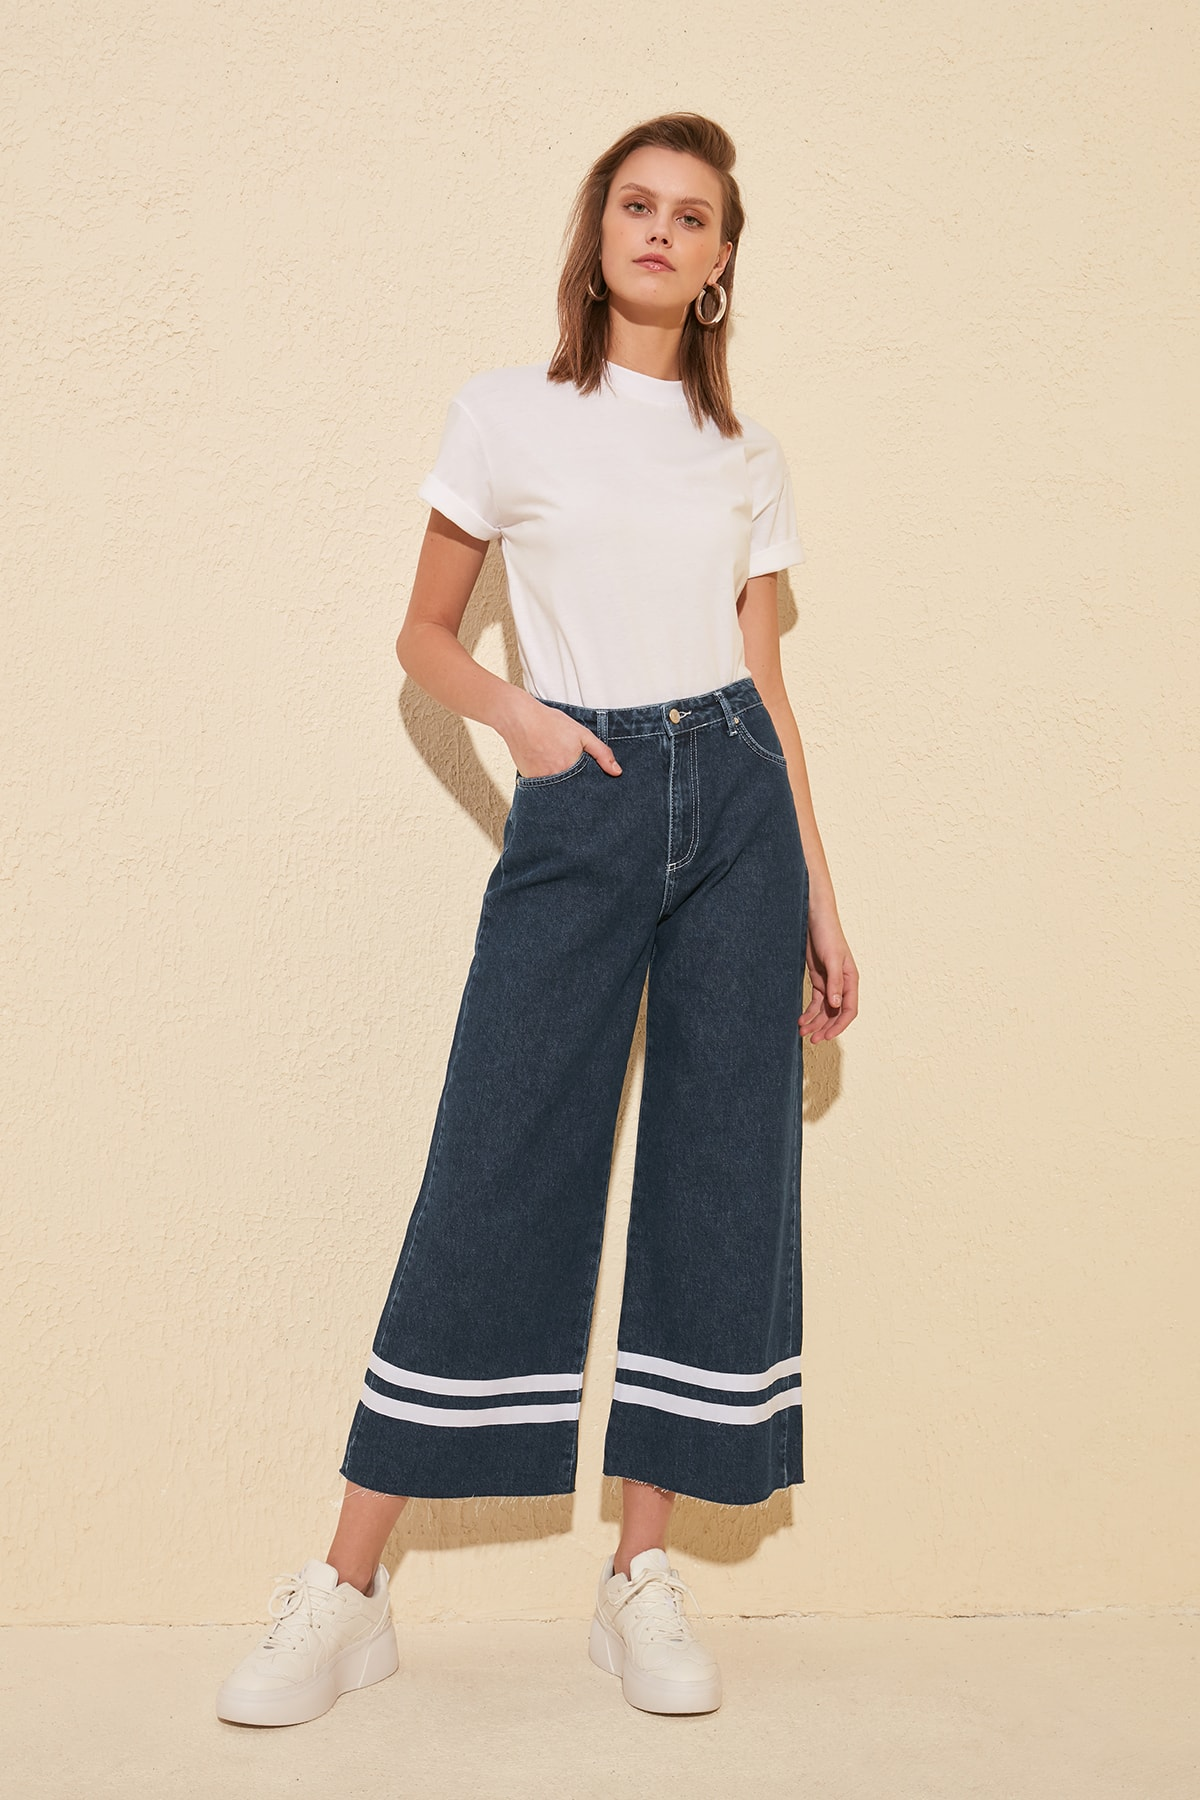 Trendyol Ribbon Detail High Waist Culotte Jeans TWOSS20JE0081